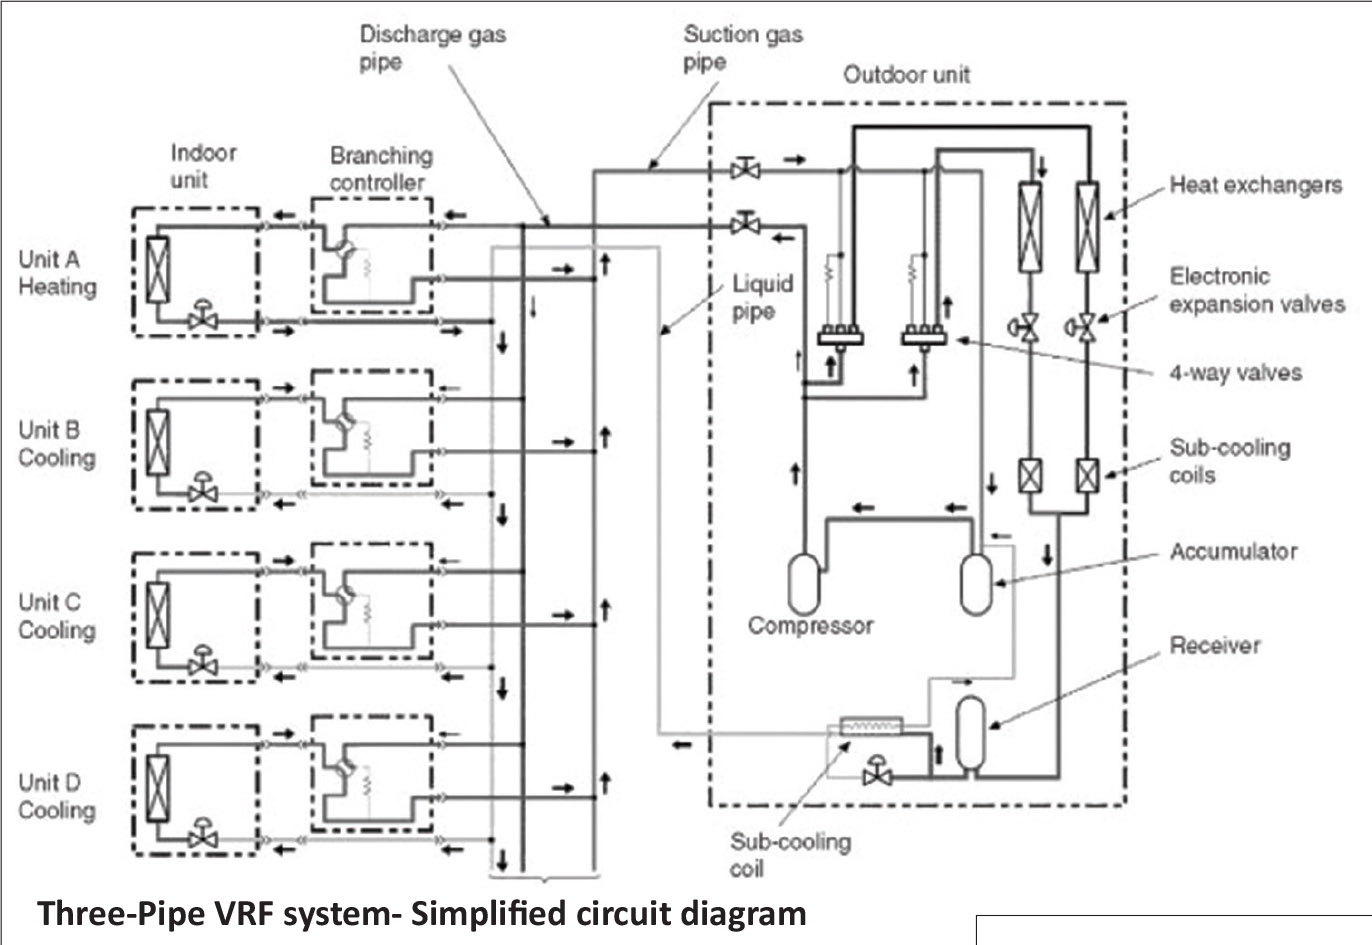 New Hvac Technology Emerges Vrf Vrv Systems Insulation Outlook Outside A C Condenser Unit Wiring Diagram Contractors Understand The Complexities Of These And Make Design Ownership Communities Aware Why Installation Needs